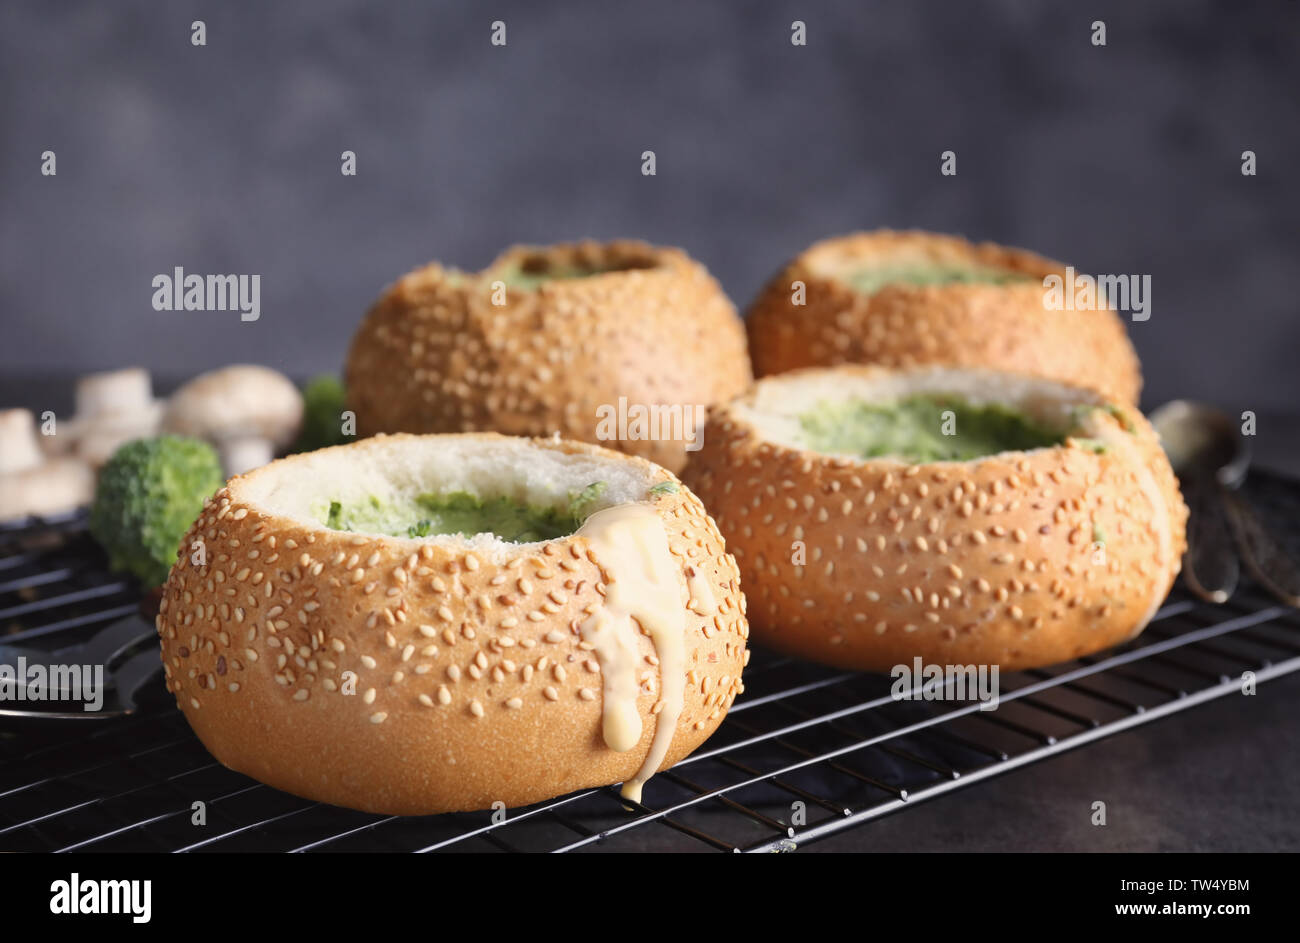 Broccoli cheese soup in bread buns on cooling rack - Stock Image